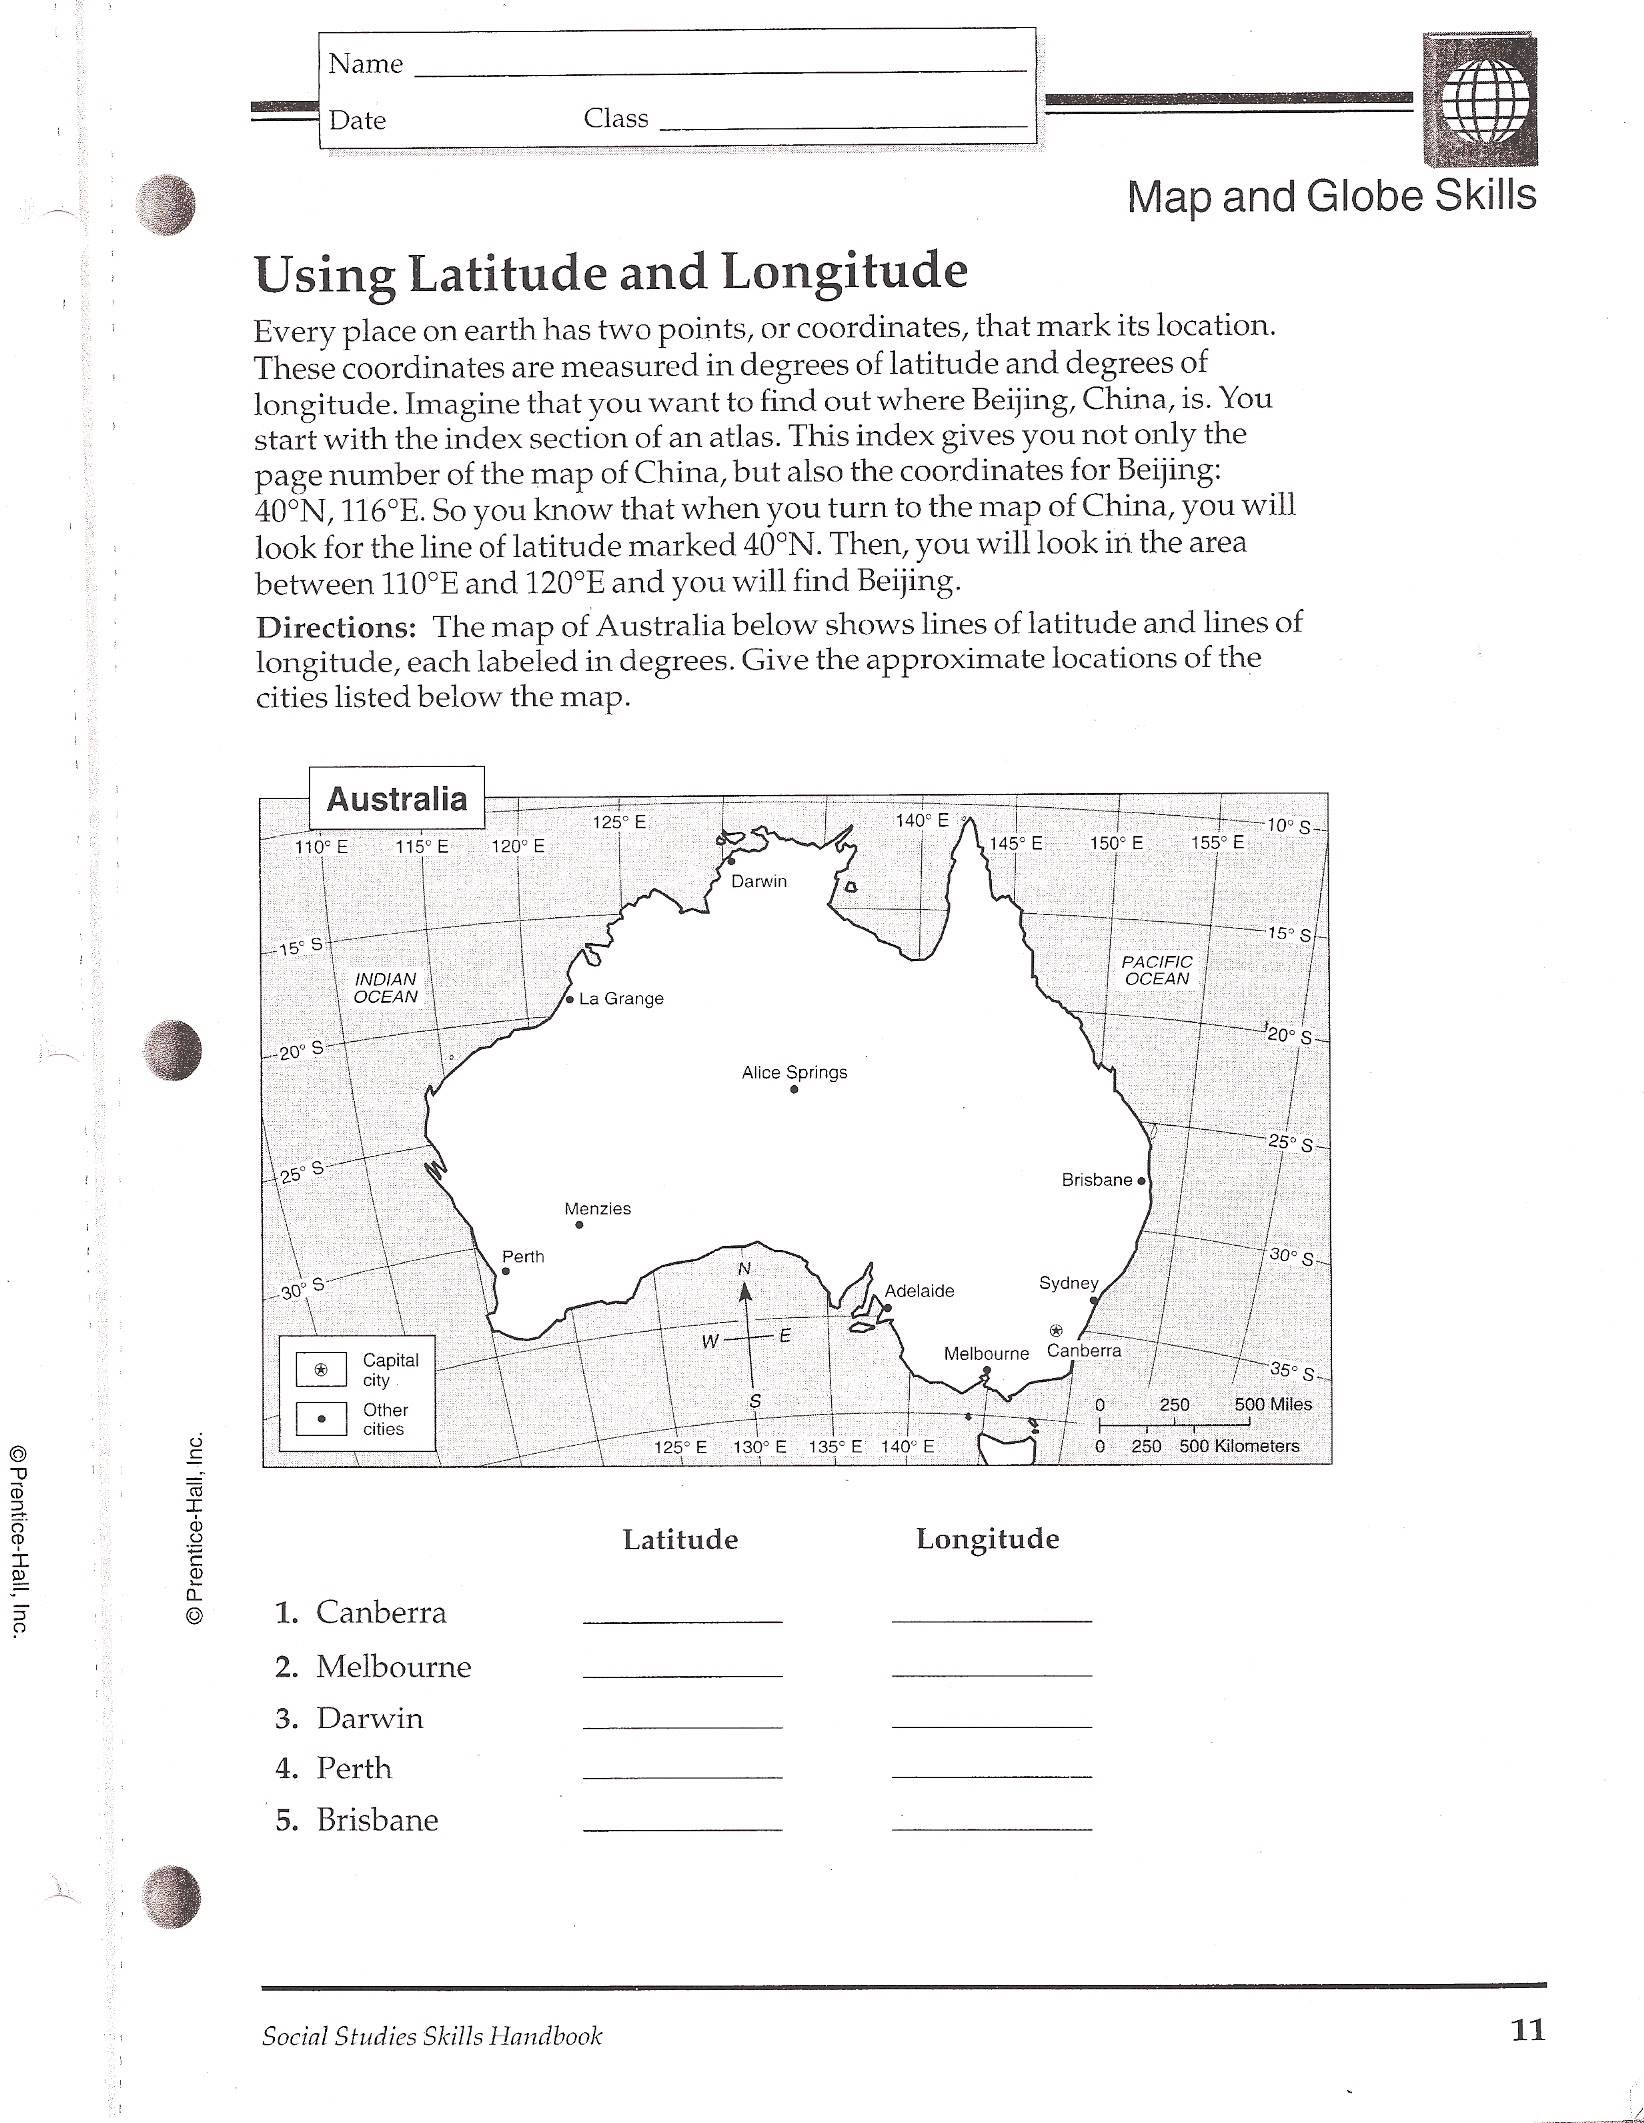 Worksheet : Latitude And Longitude Worksheets For Kids The Best | Latitude And Longitude Printable Practice Worksheets